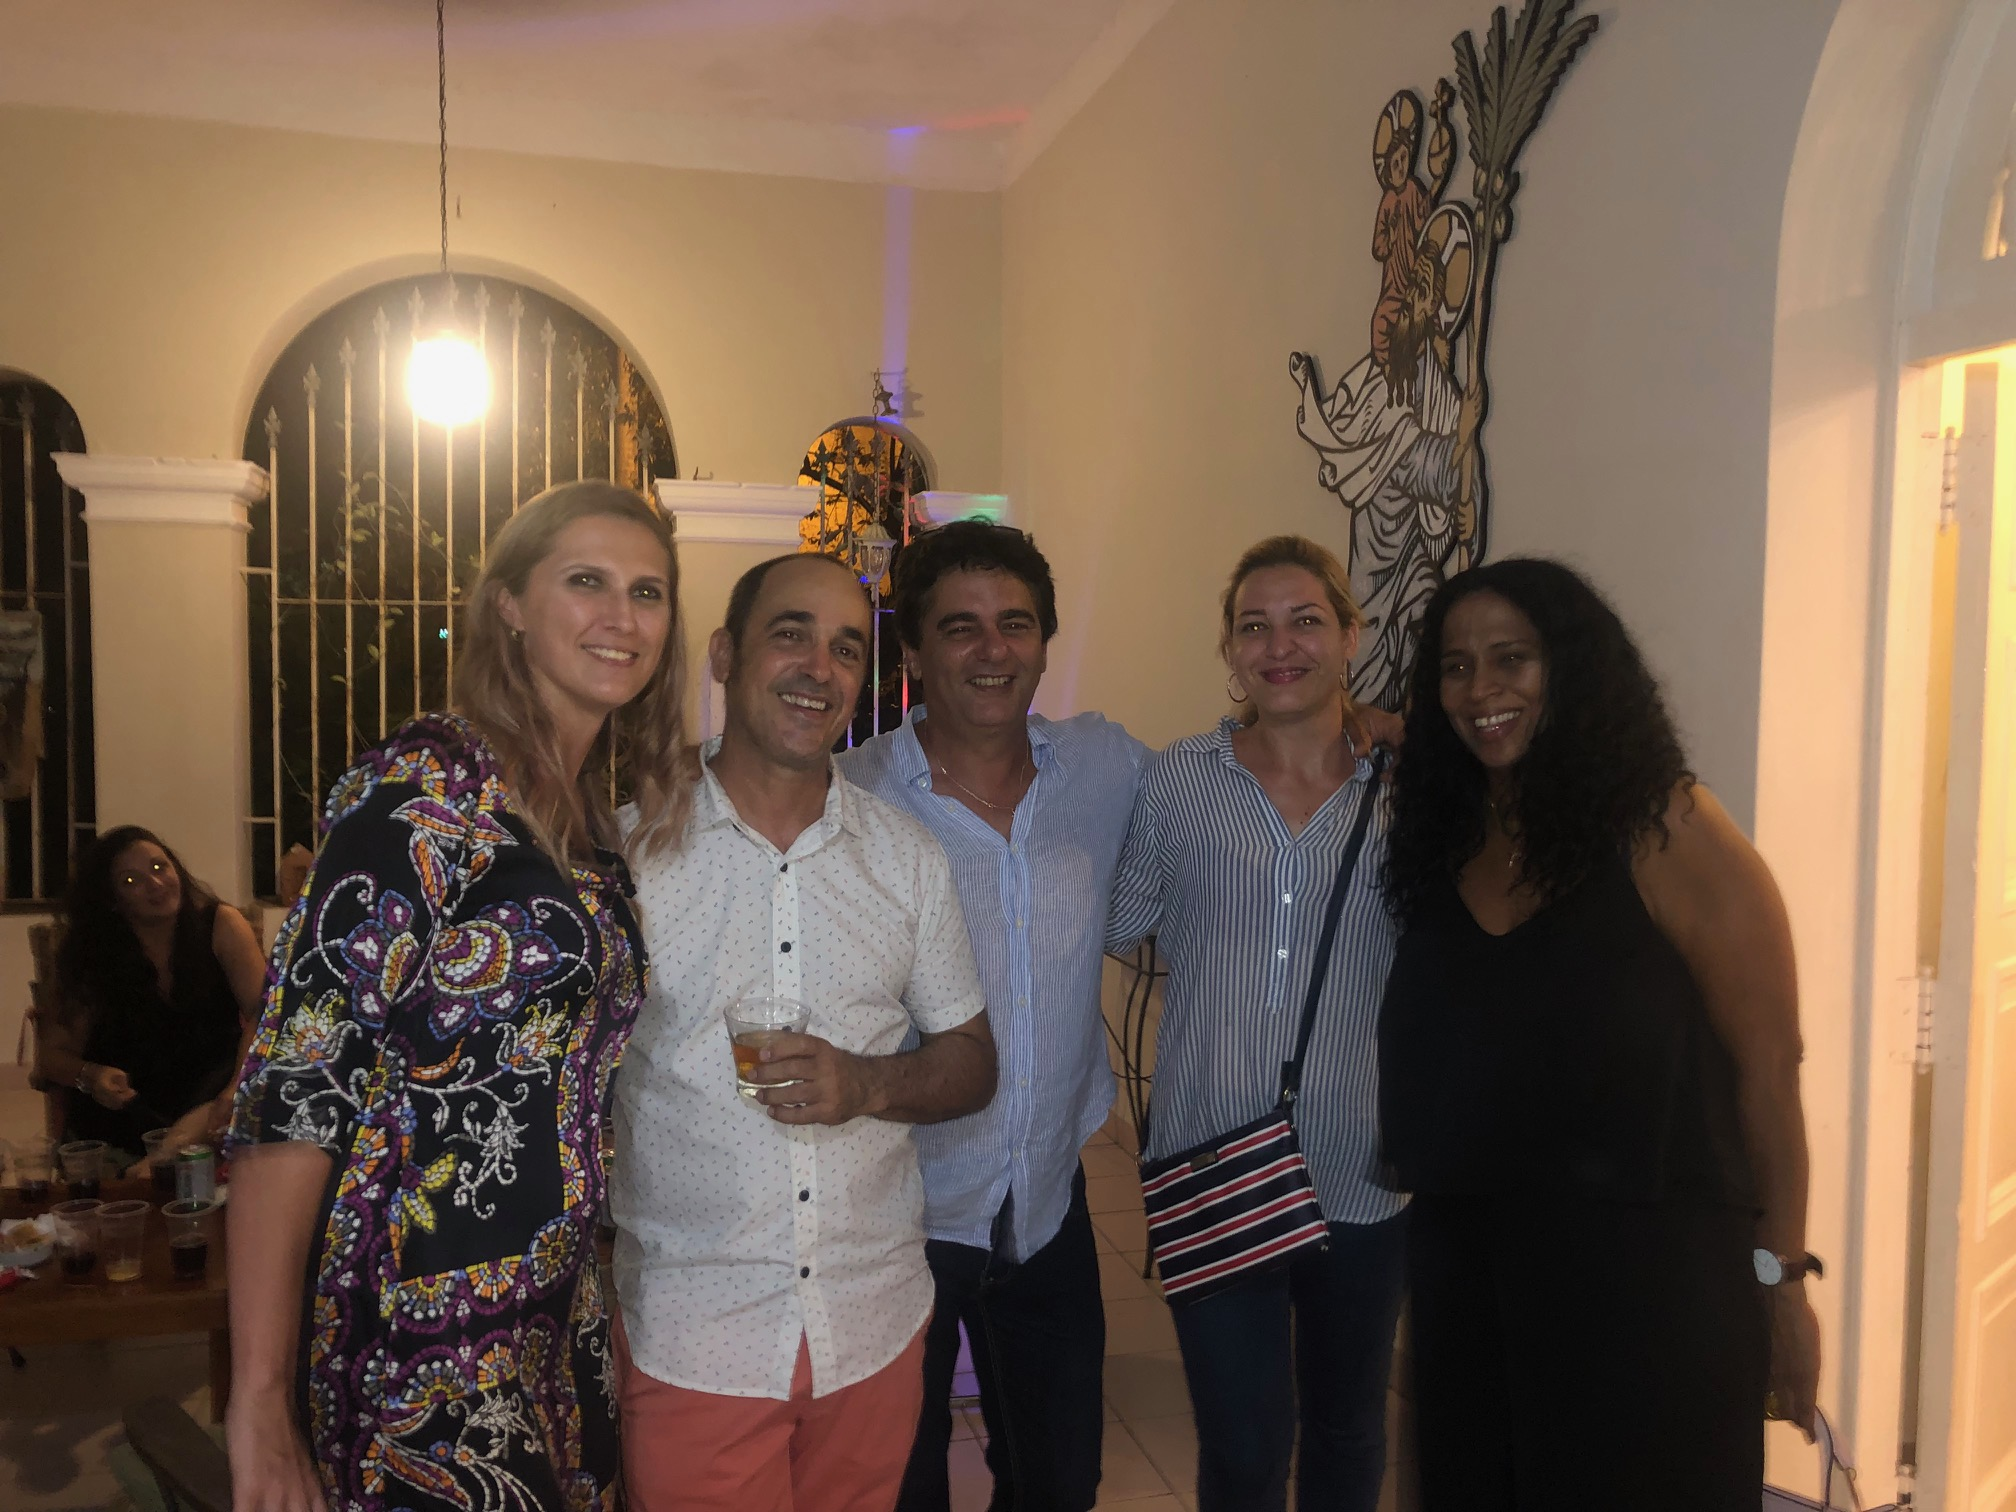 With guests and artist Eduardo Abela Torras with whom Katrin exhibited.